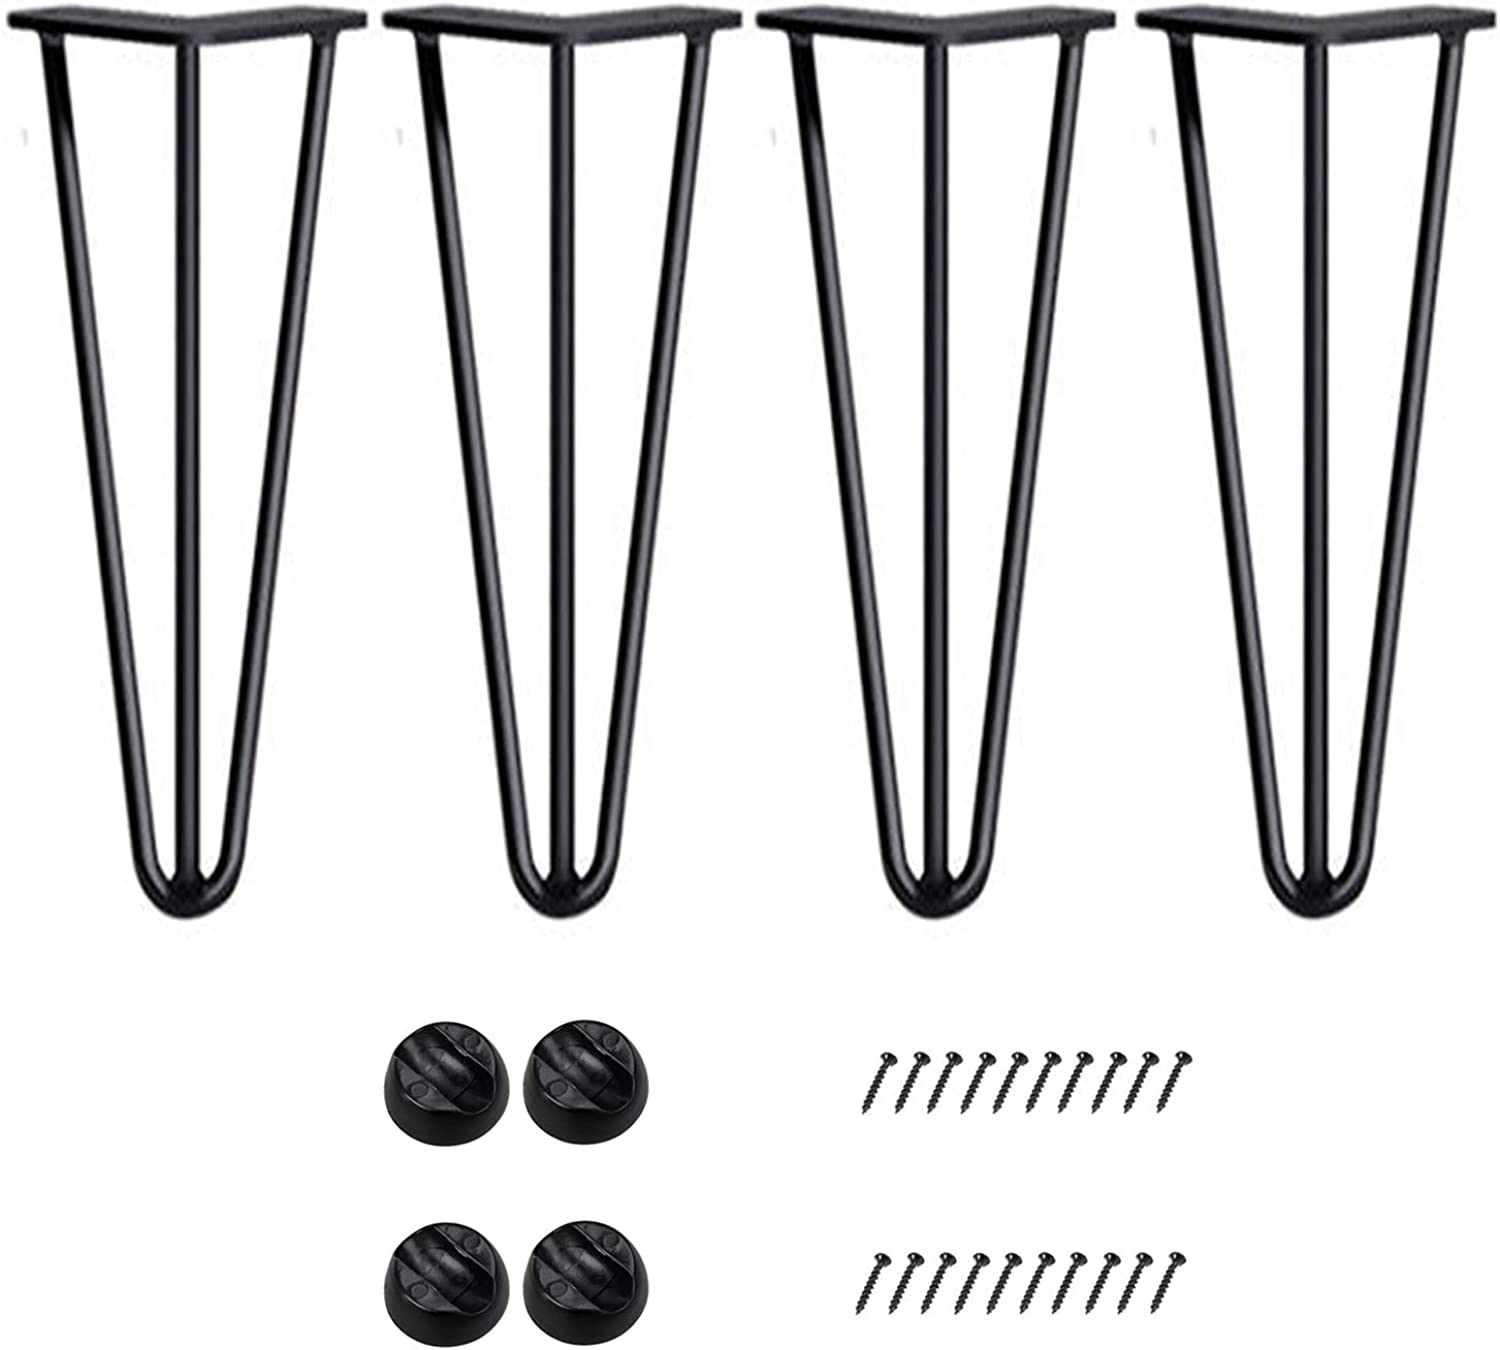 Bronkey 4PCS Vintage Industrial Style Hairpin Legs, 16  Three Rods 3 8  Solid Bar Construction Design, Black Steel Metal Heavy Duty Table Leg, for DIY Living Room TV Stand Sofa Coffee Shop Decoration